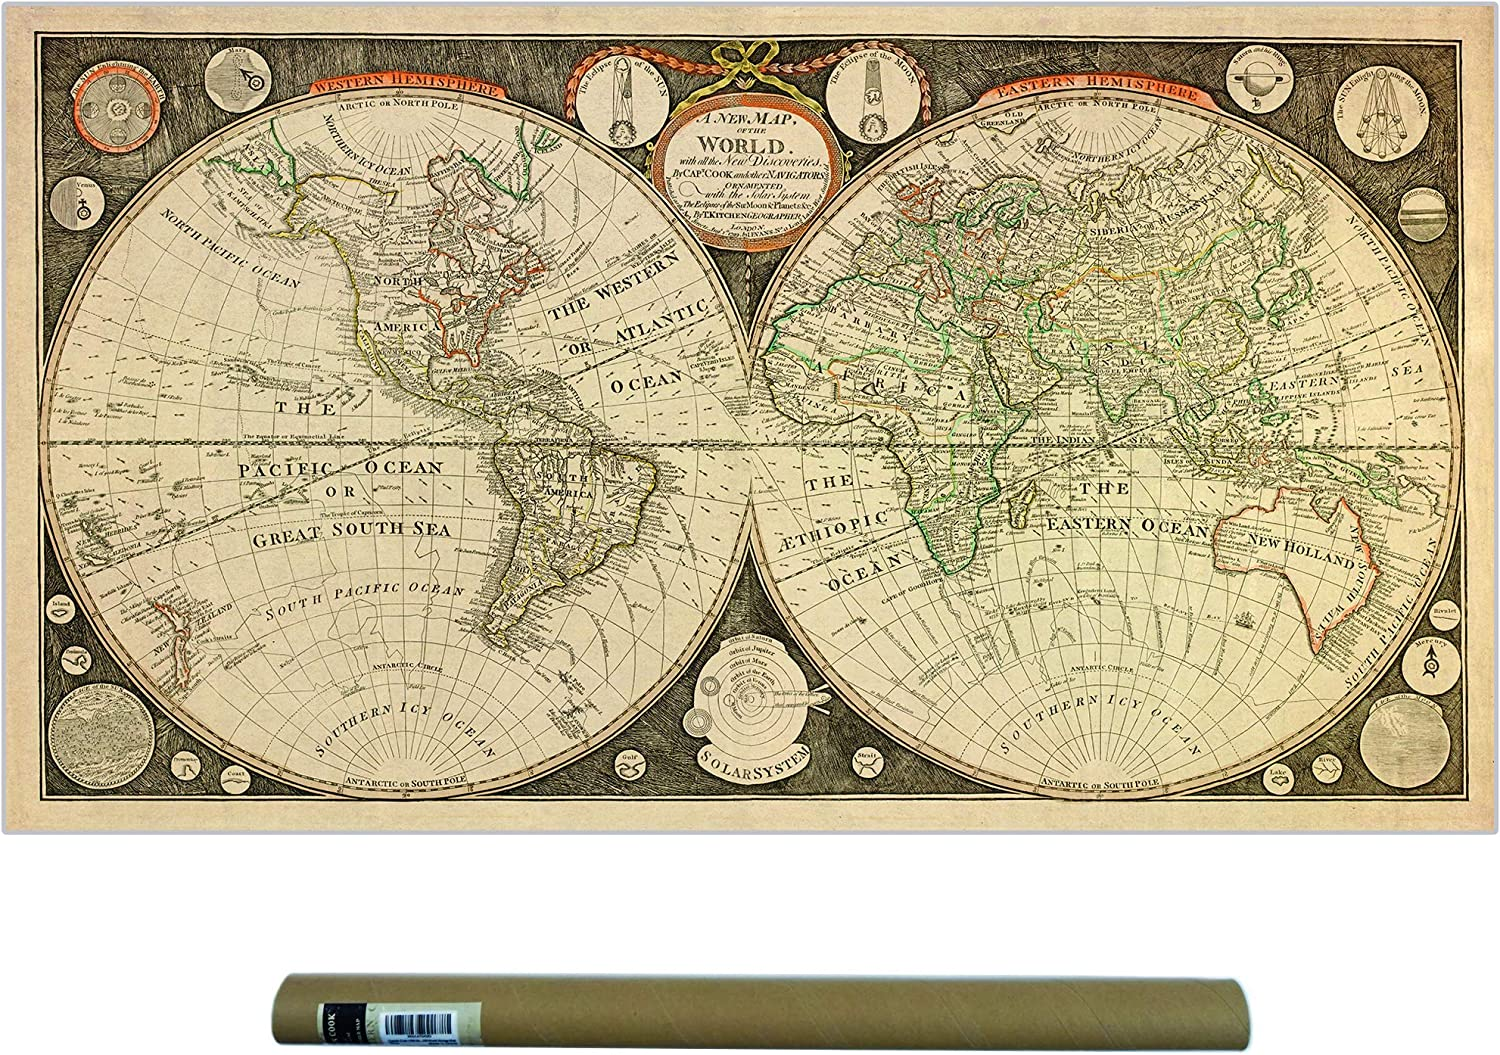 Dekali Designs Captain Cook 1799 Vintage World Map Poster - Canvas Fabric Print Map of The World - World Map Wall Art/Old Decor/Antique Maps/Wall Hanging - 42 x 24 Inches Old World Vintage Map